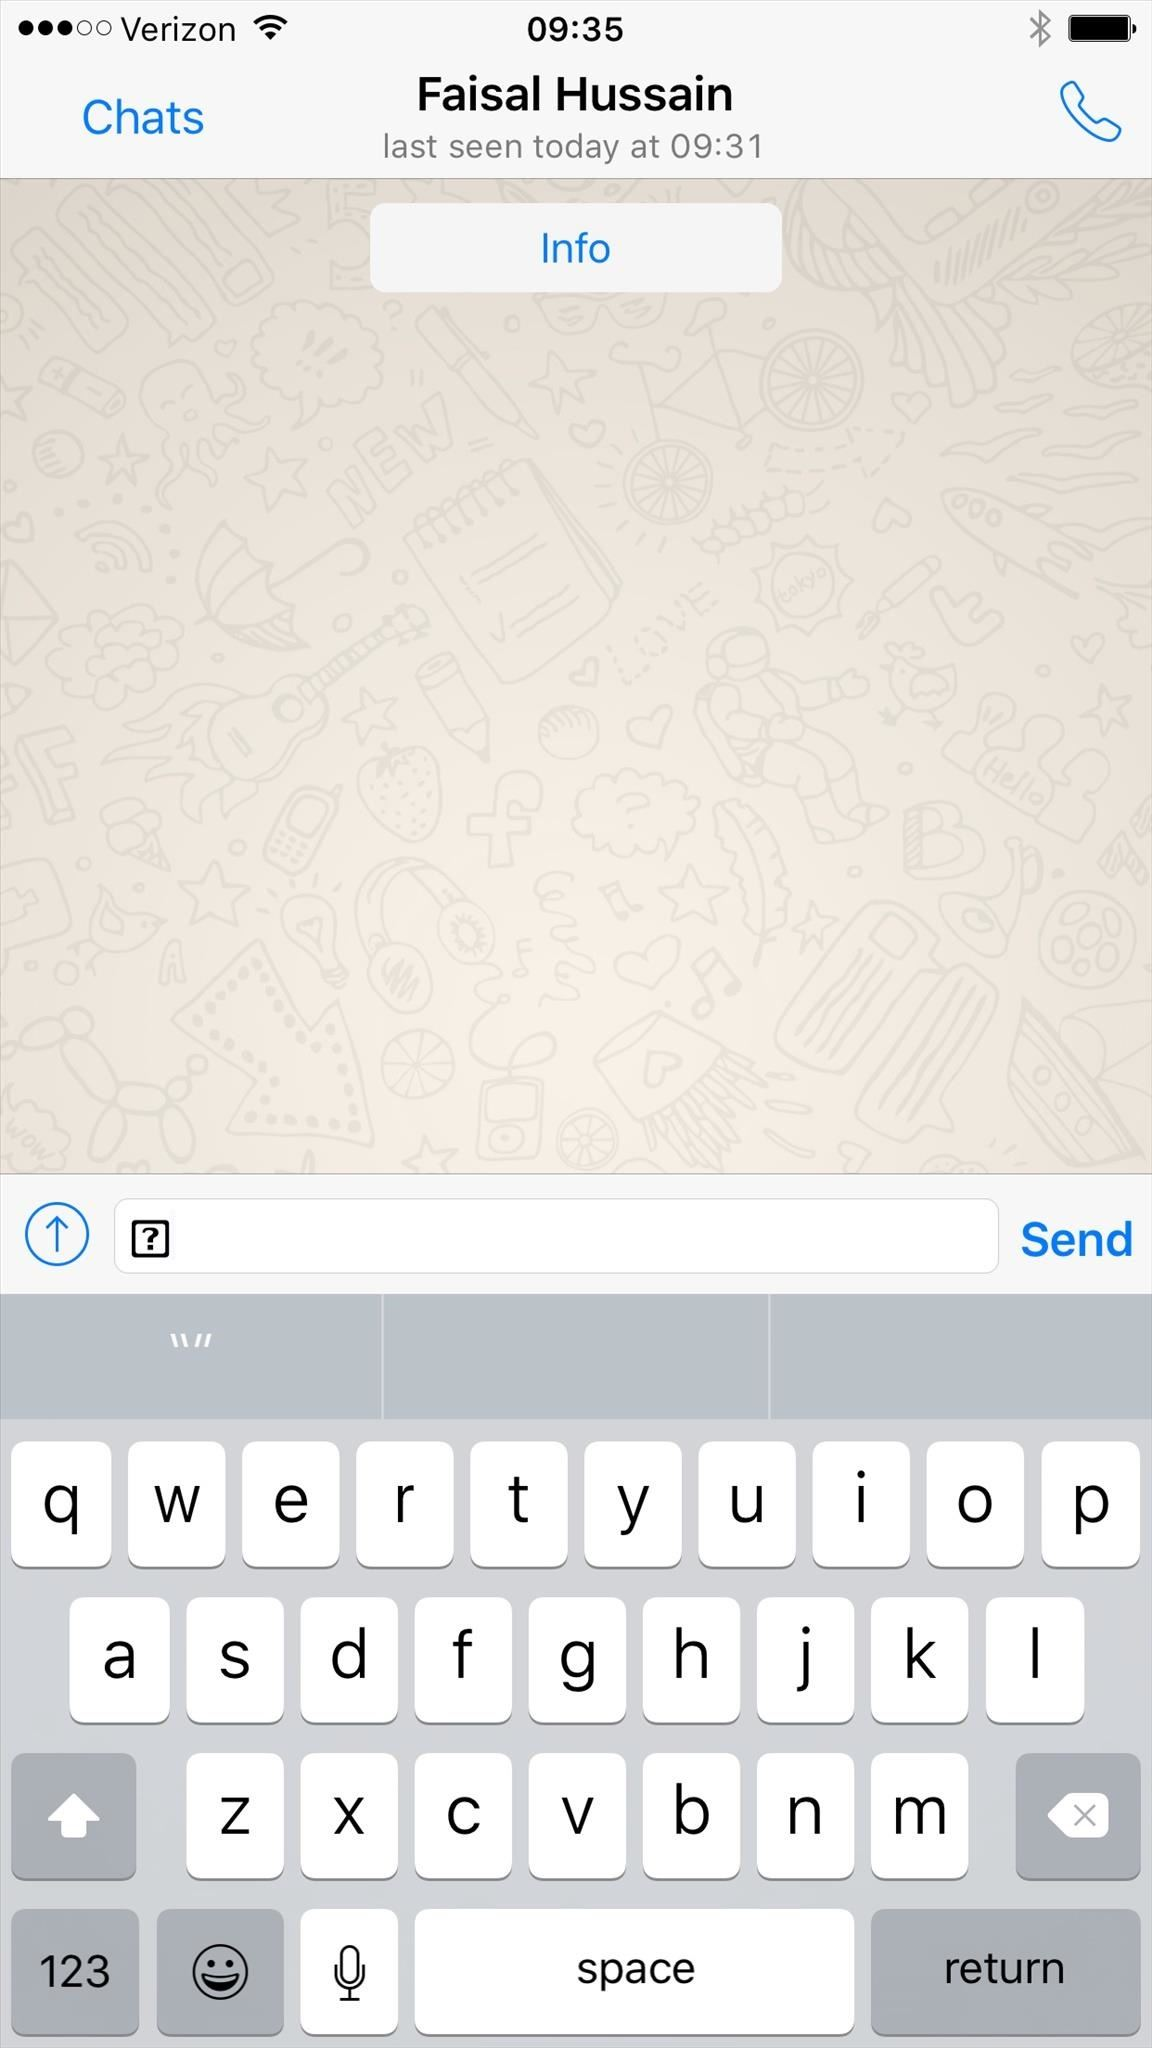 How to Use the Middle Finger Emoji on WhatsApp